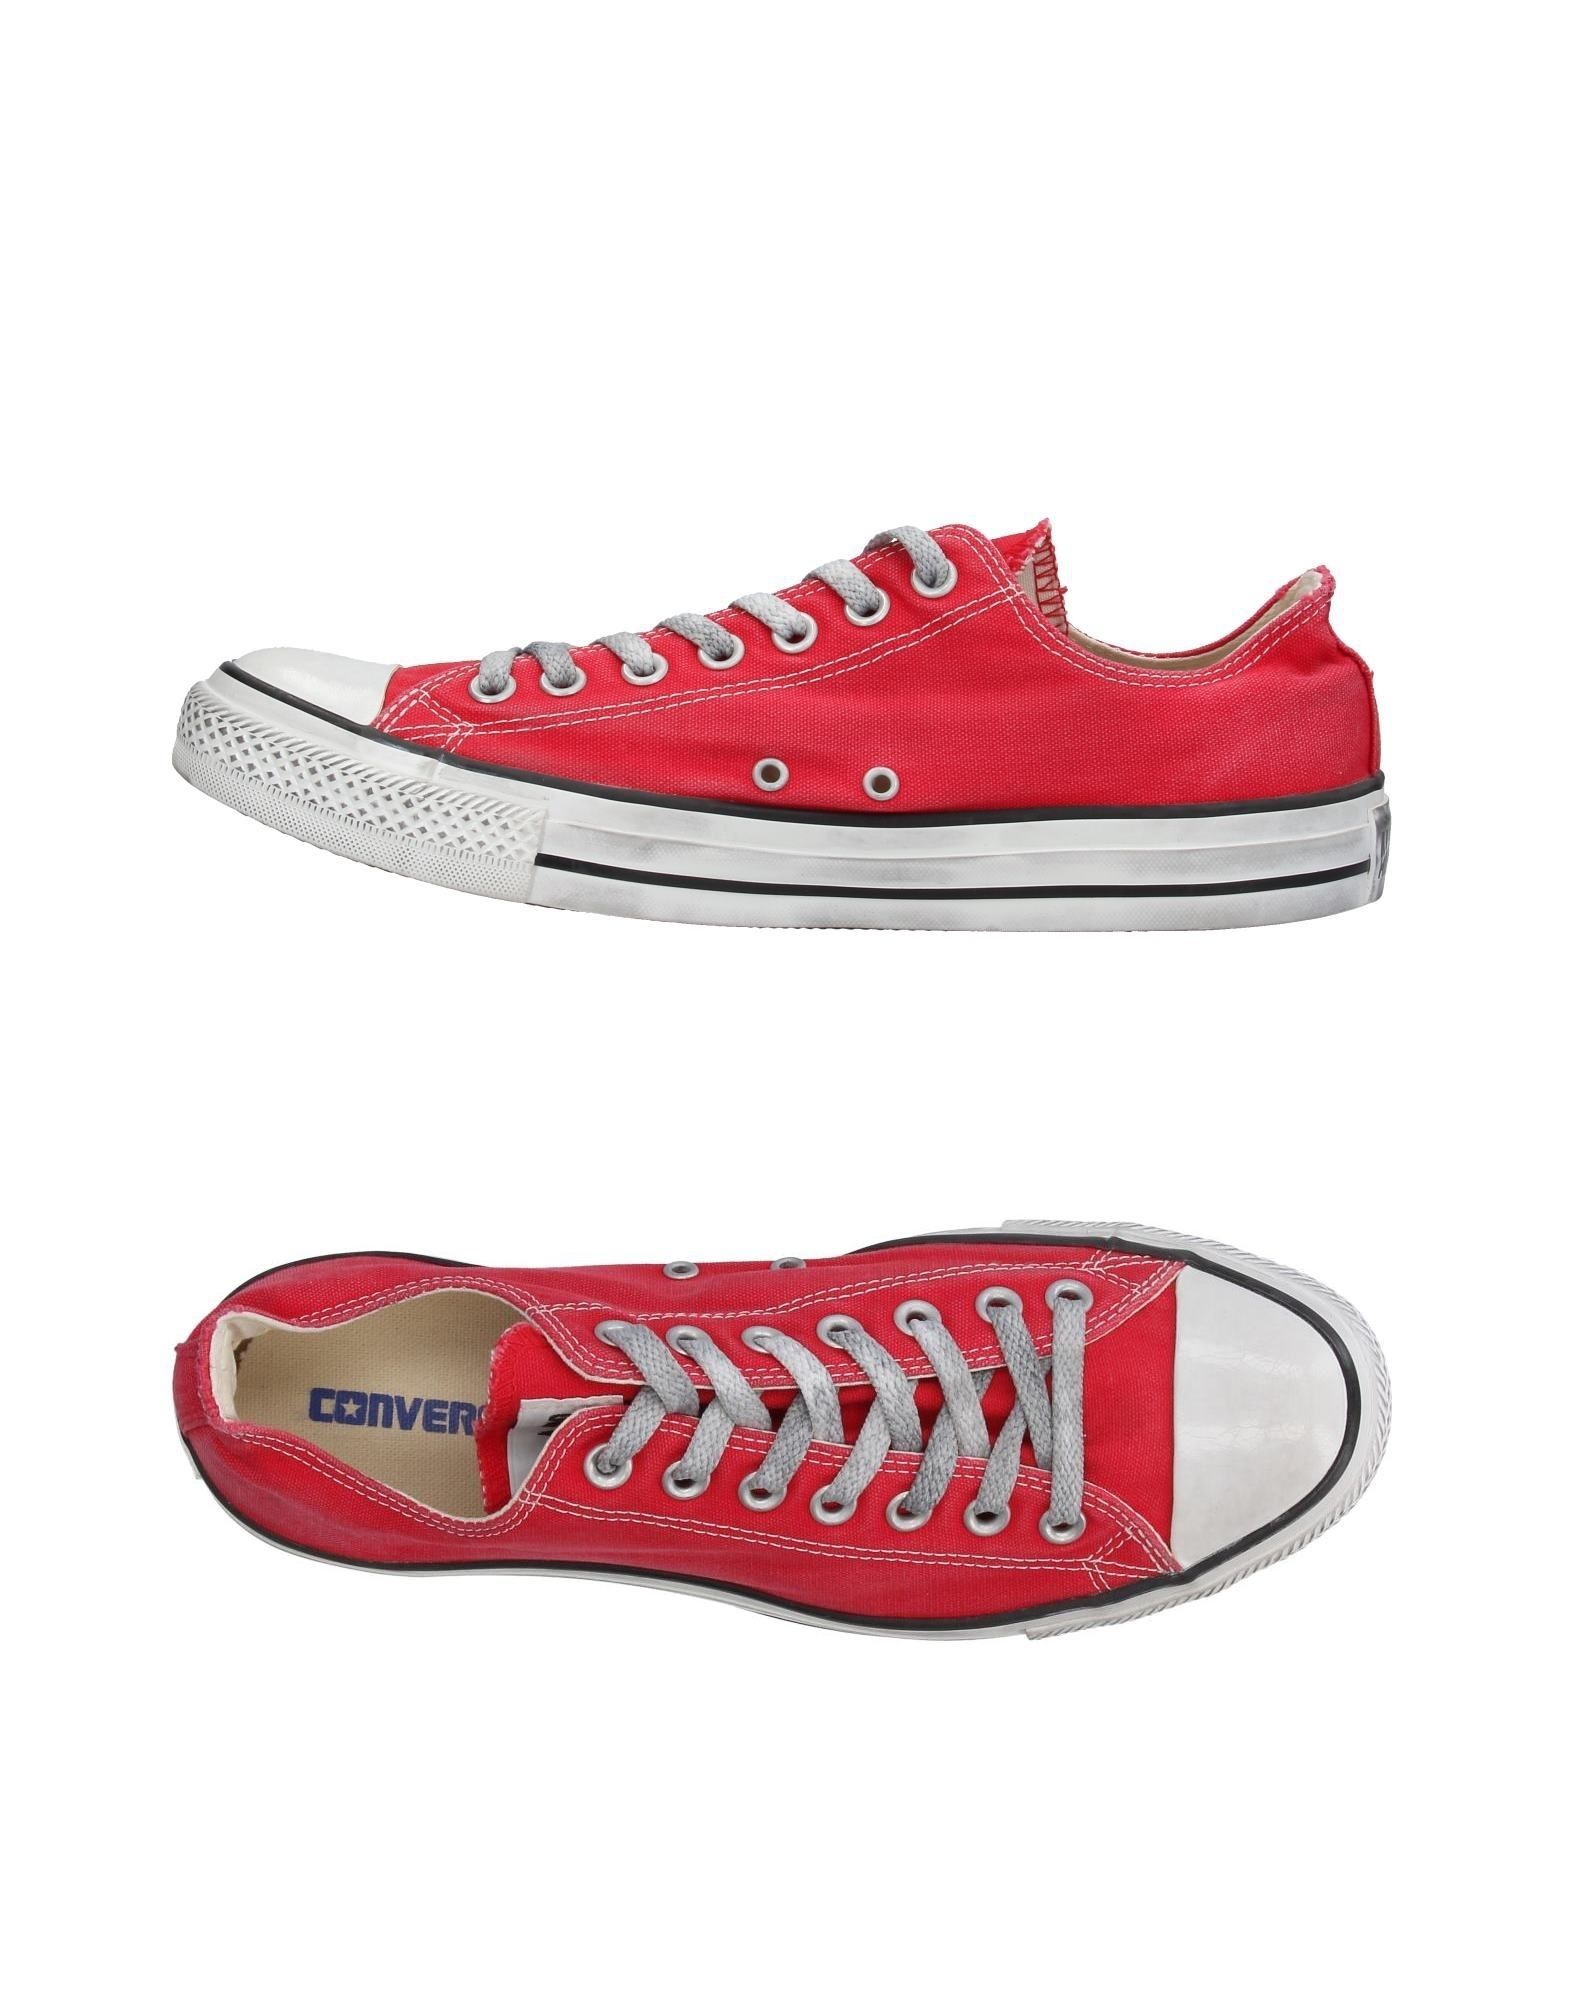 CONVERSE LIMITED EDITION Низкие кеды и кроссовки converse limited edition высокие кеды и кроссовки